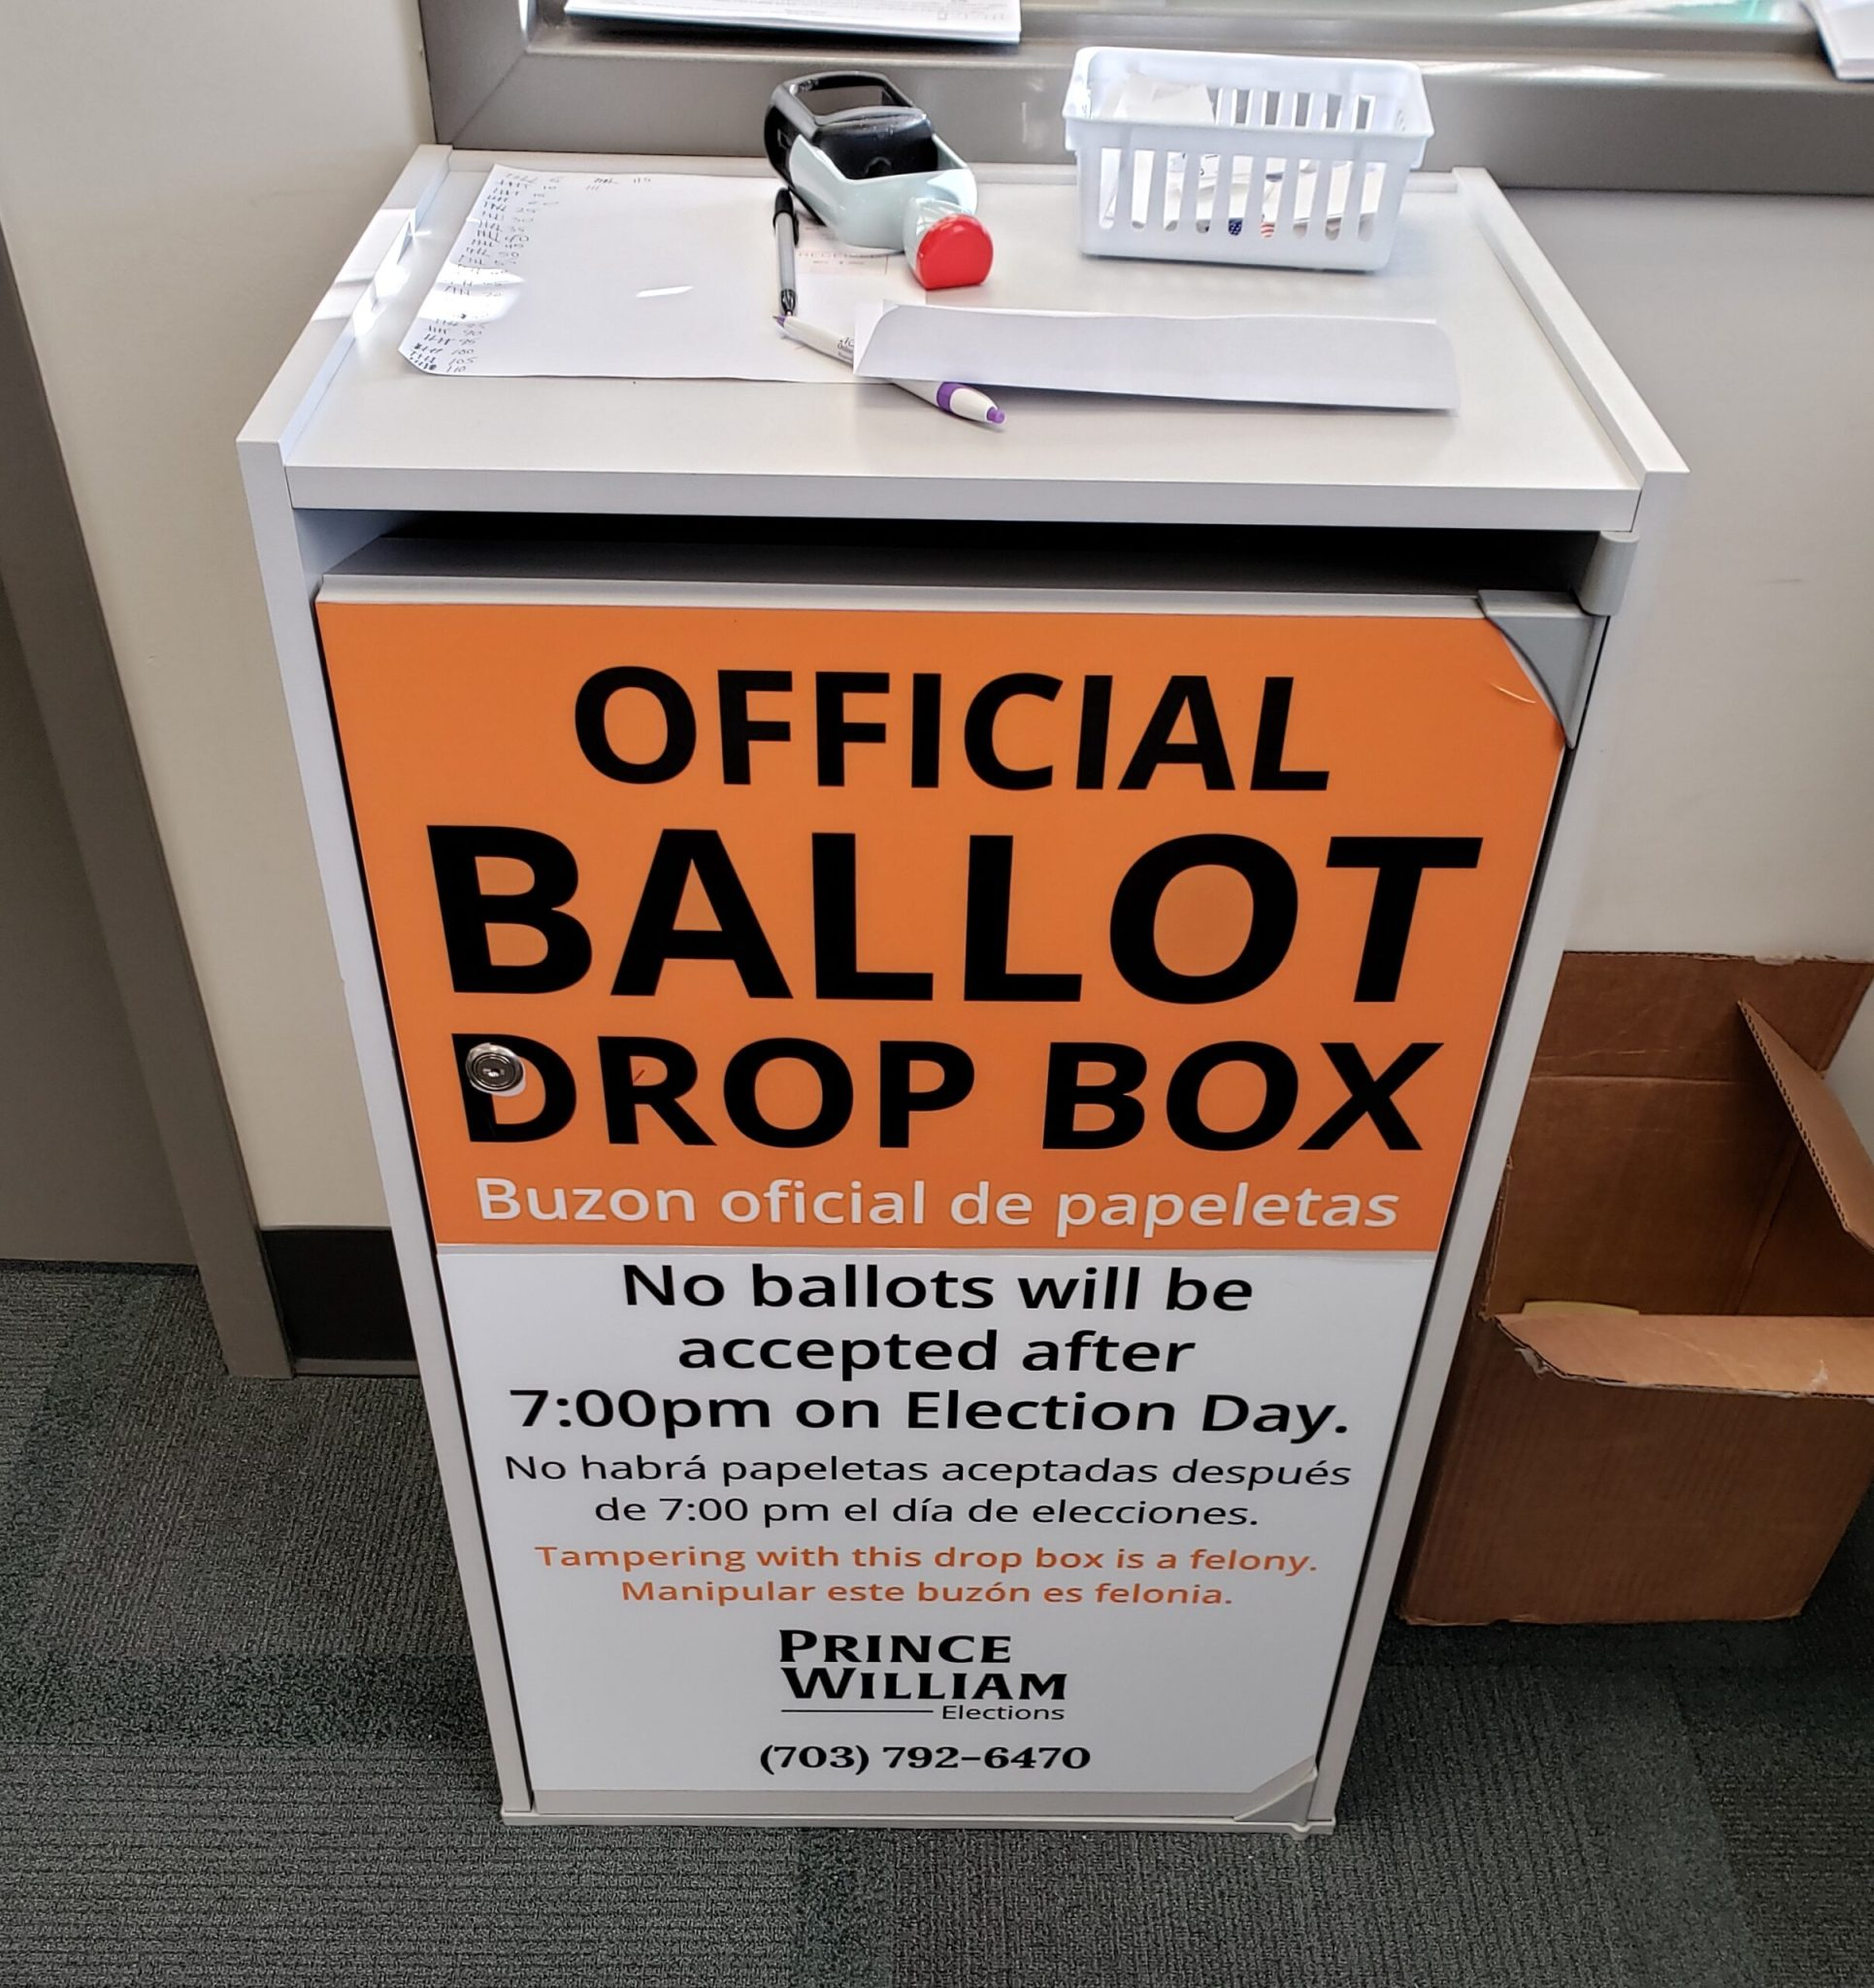 Election Day in the United States: what are you seeing in and around academia?